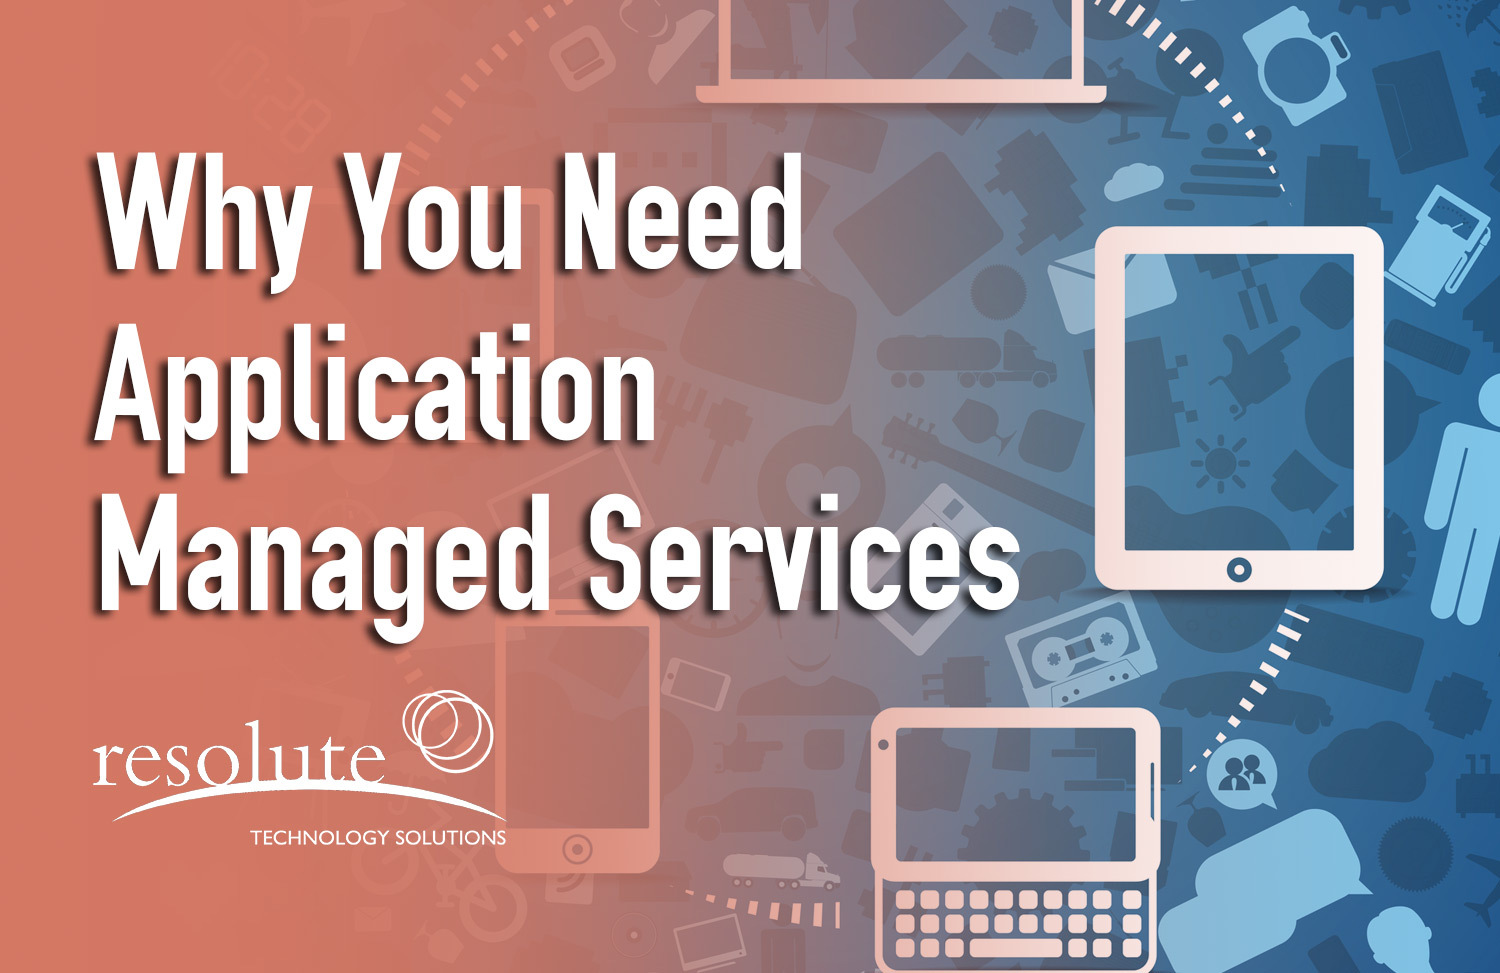 Why You Need Application Managed Services